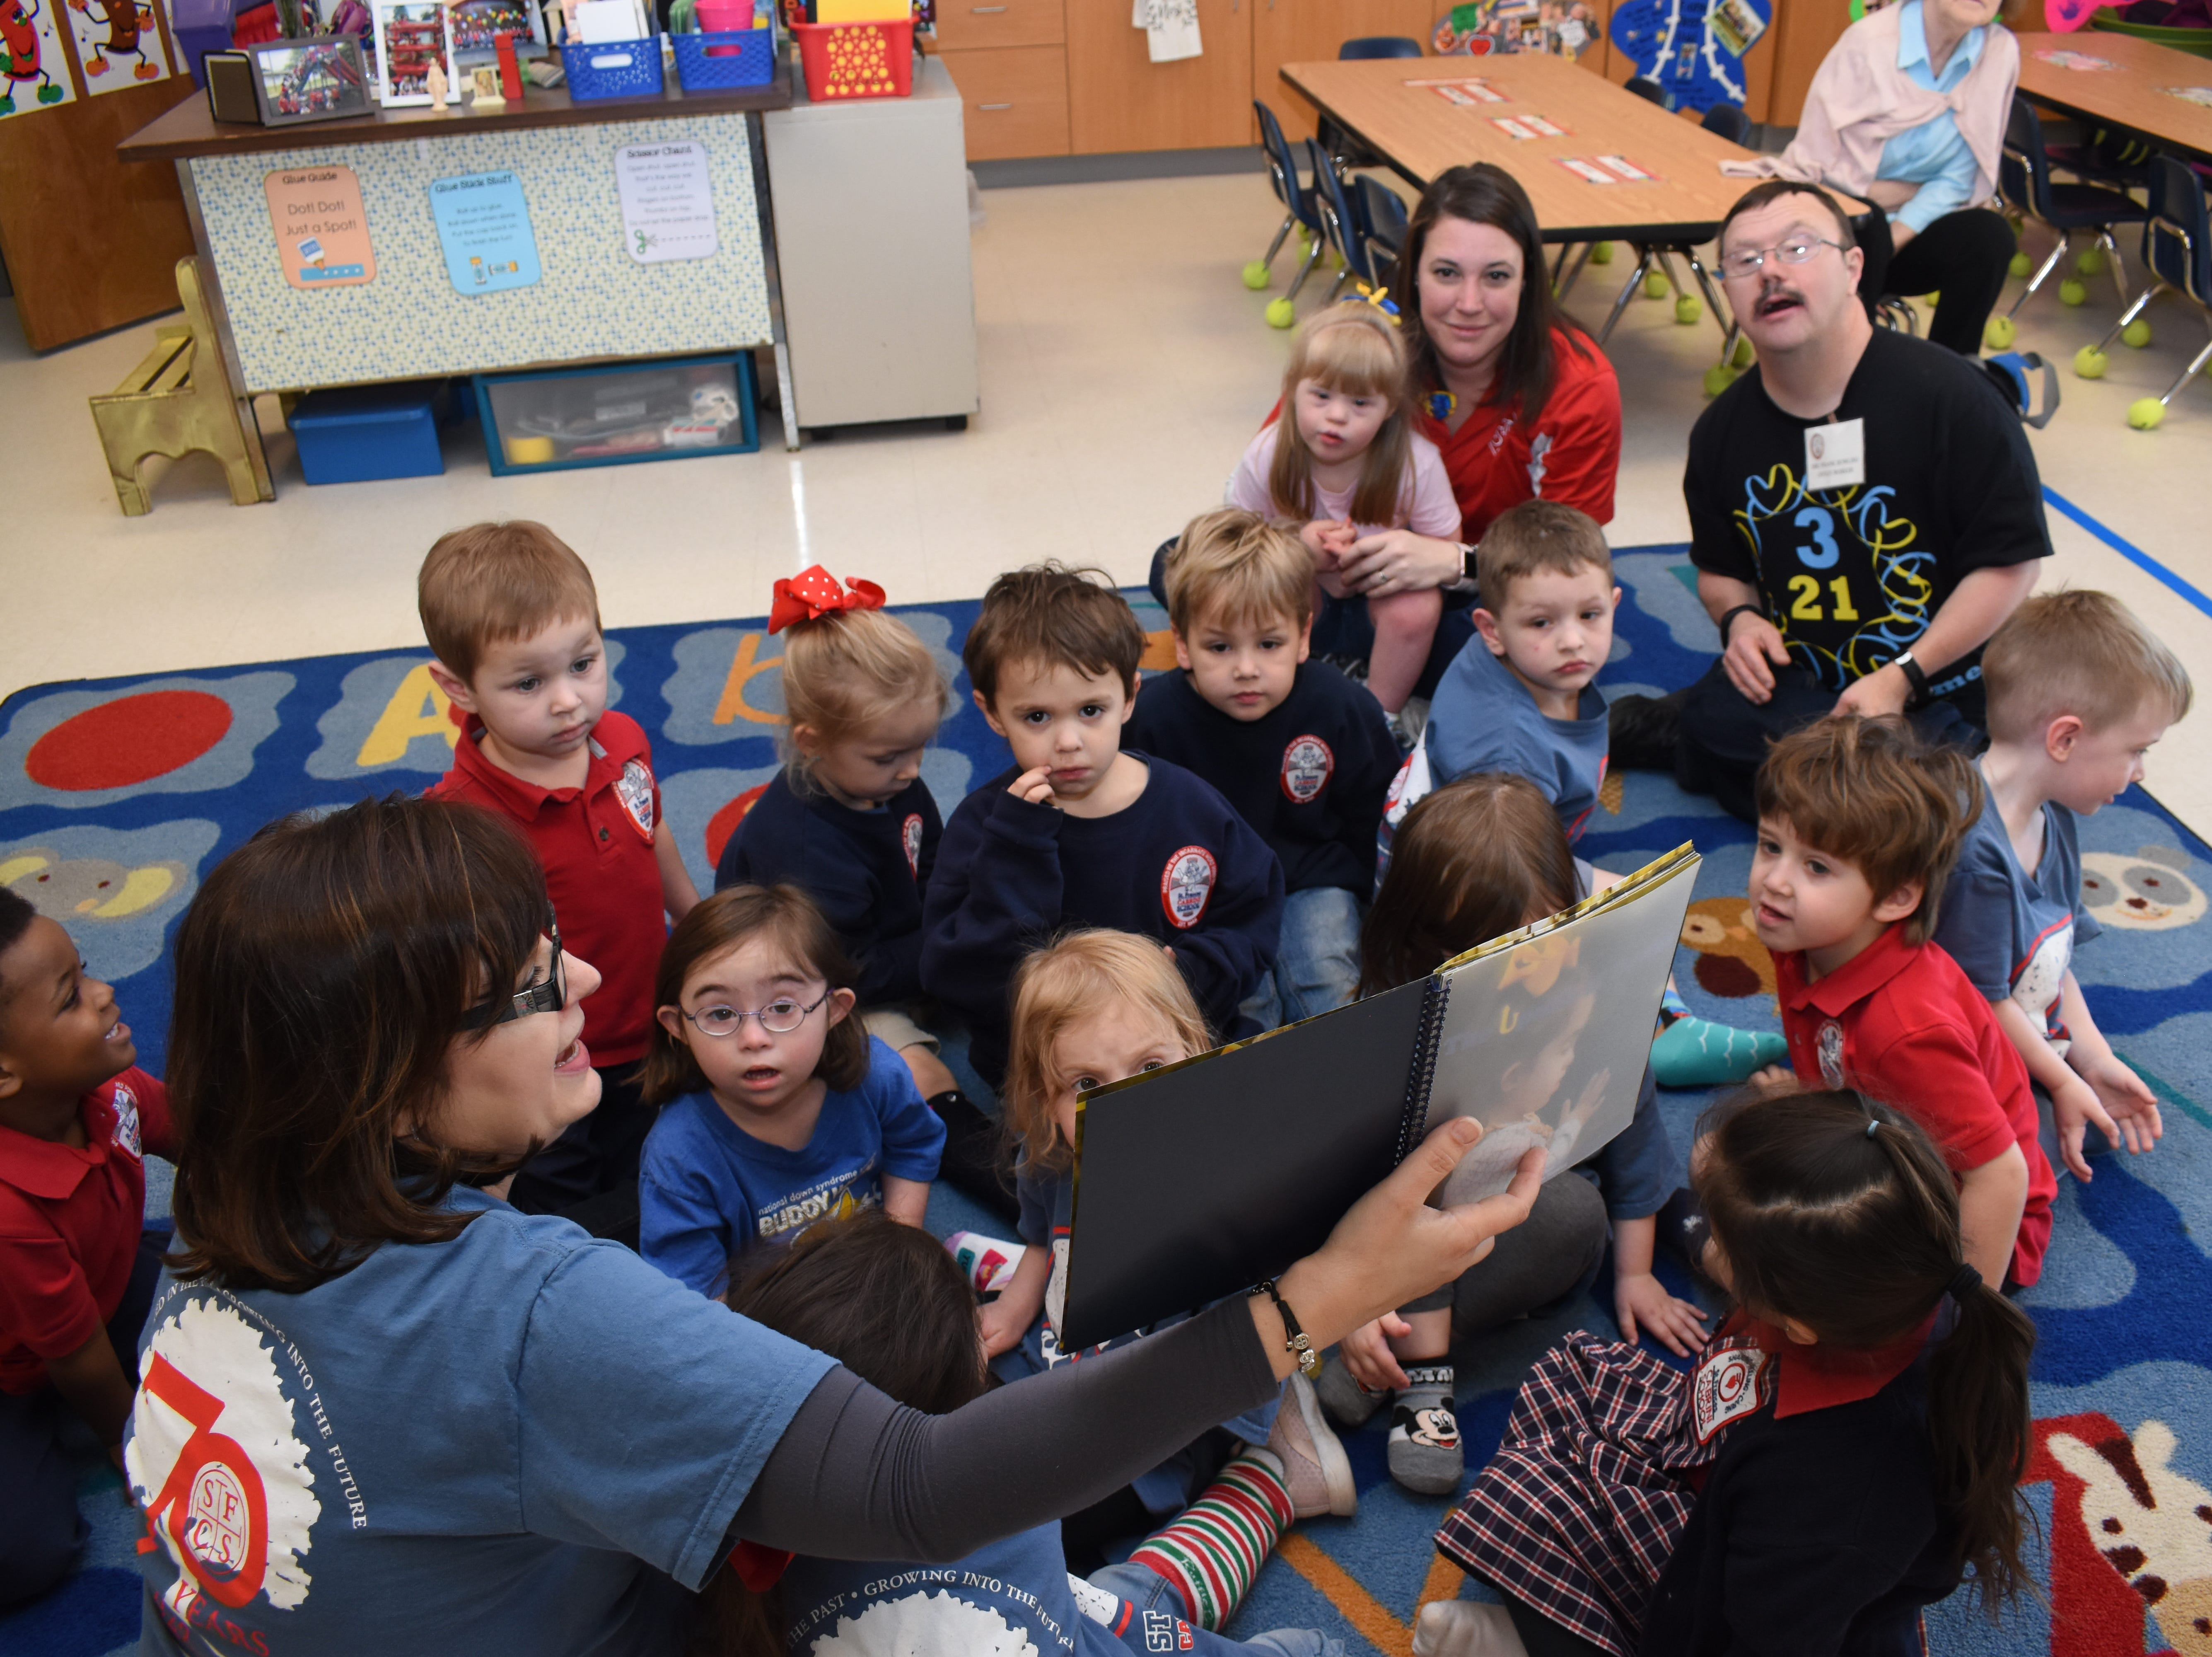 """Students at St. Frances Cabrini School celebrated World Down Syndrome Day Thursday, March 21, 2019. """"Rock Your Socks"""" was the theme for the day. For $2 students could wear crazy socks with jeans and a spirit shirt. Gail Callahan (lower left), a pre-Kindergarten three teacher, read a book to her class written by another Cabrini teacher Ashley Distefano, titled """"The Upside of Downs."""" The book was written for Distefano's daughter Elizabeth Butler, 4 (second from Callahan), who has Down syndrome. The book also features another Cabrini Student who has Down, Sydney Rud, 4."""